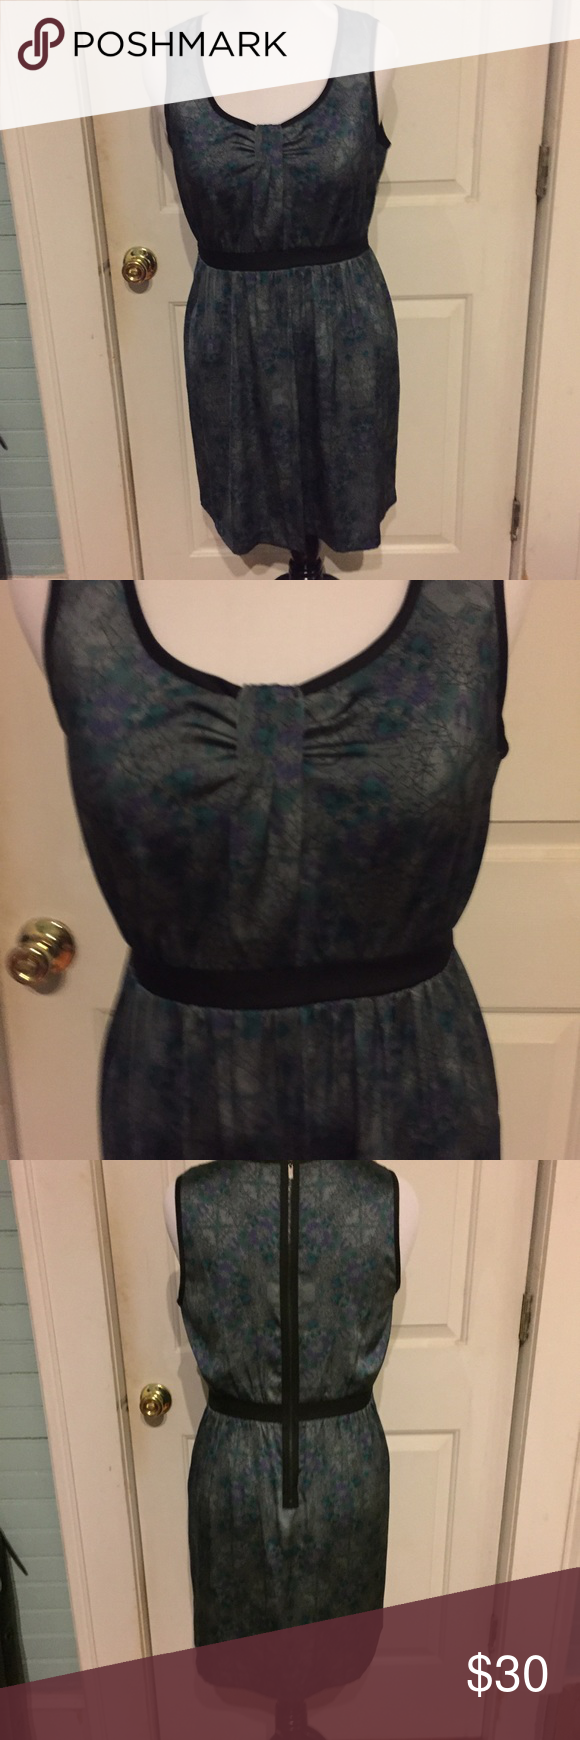 Large Silk sleeveless patterned dress by Kensie Size Large Silk sleeveless patterned dress by Kensie. Like New! Super silky and soft. Pics do not do it justice! Bundle and Save!   Measurements  Length: 36 in  Bust: 34 in  Shoulders: 14 in  Waist: 36 in Hips: 46 in Kensie Dresses Midi